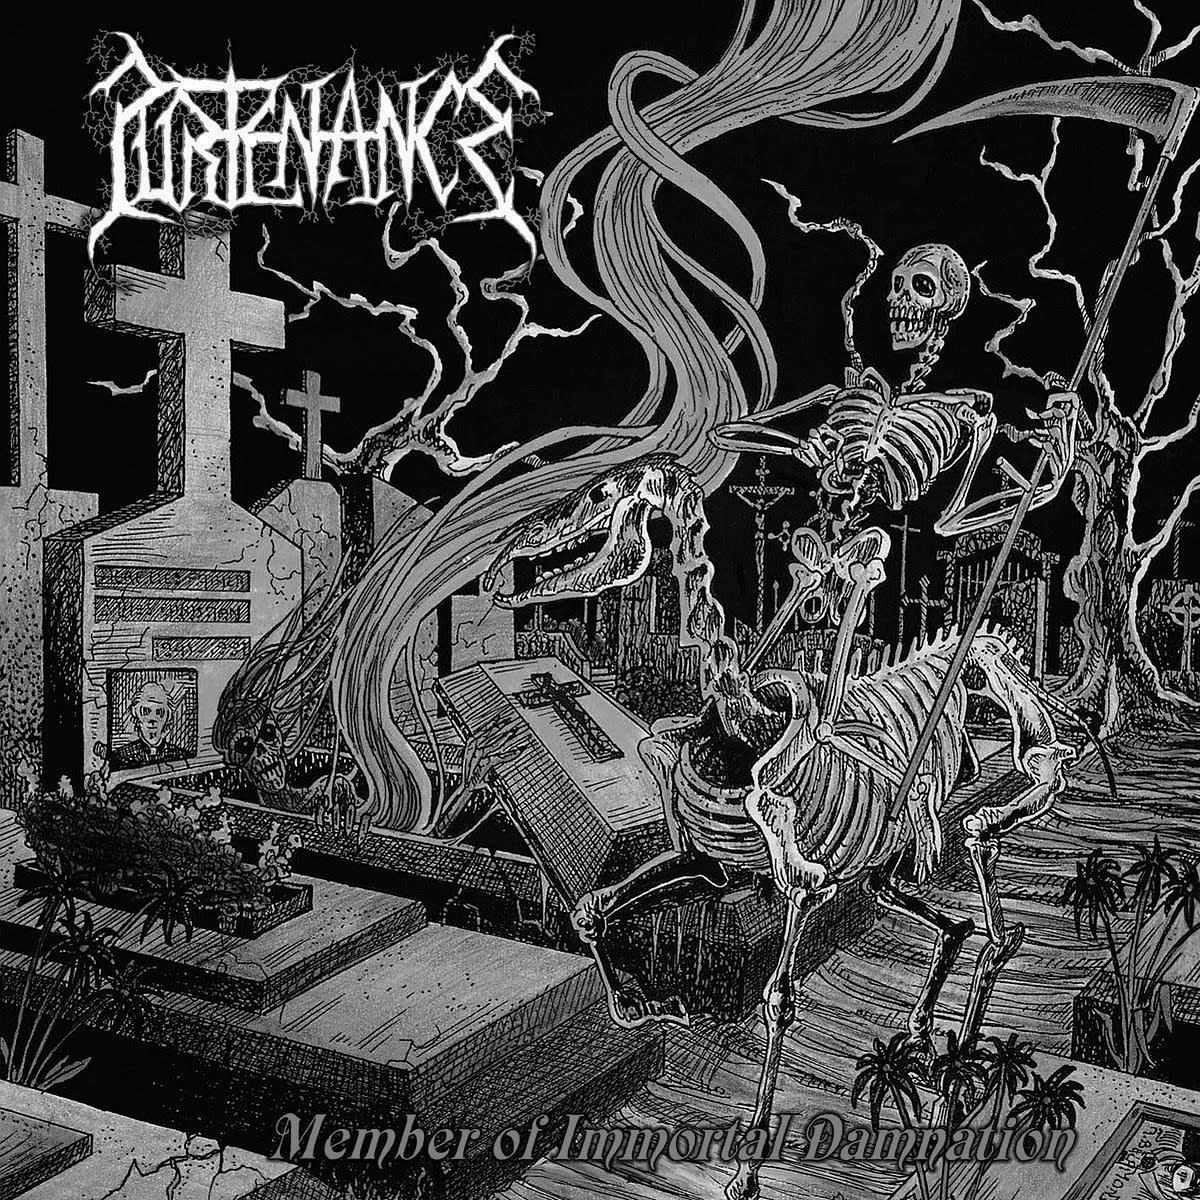 Rotting Ways to Misery, death metal, Purtenance